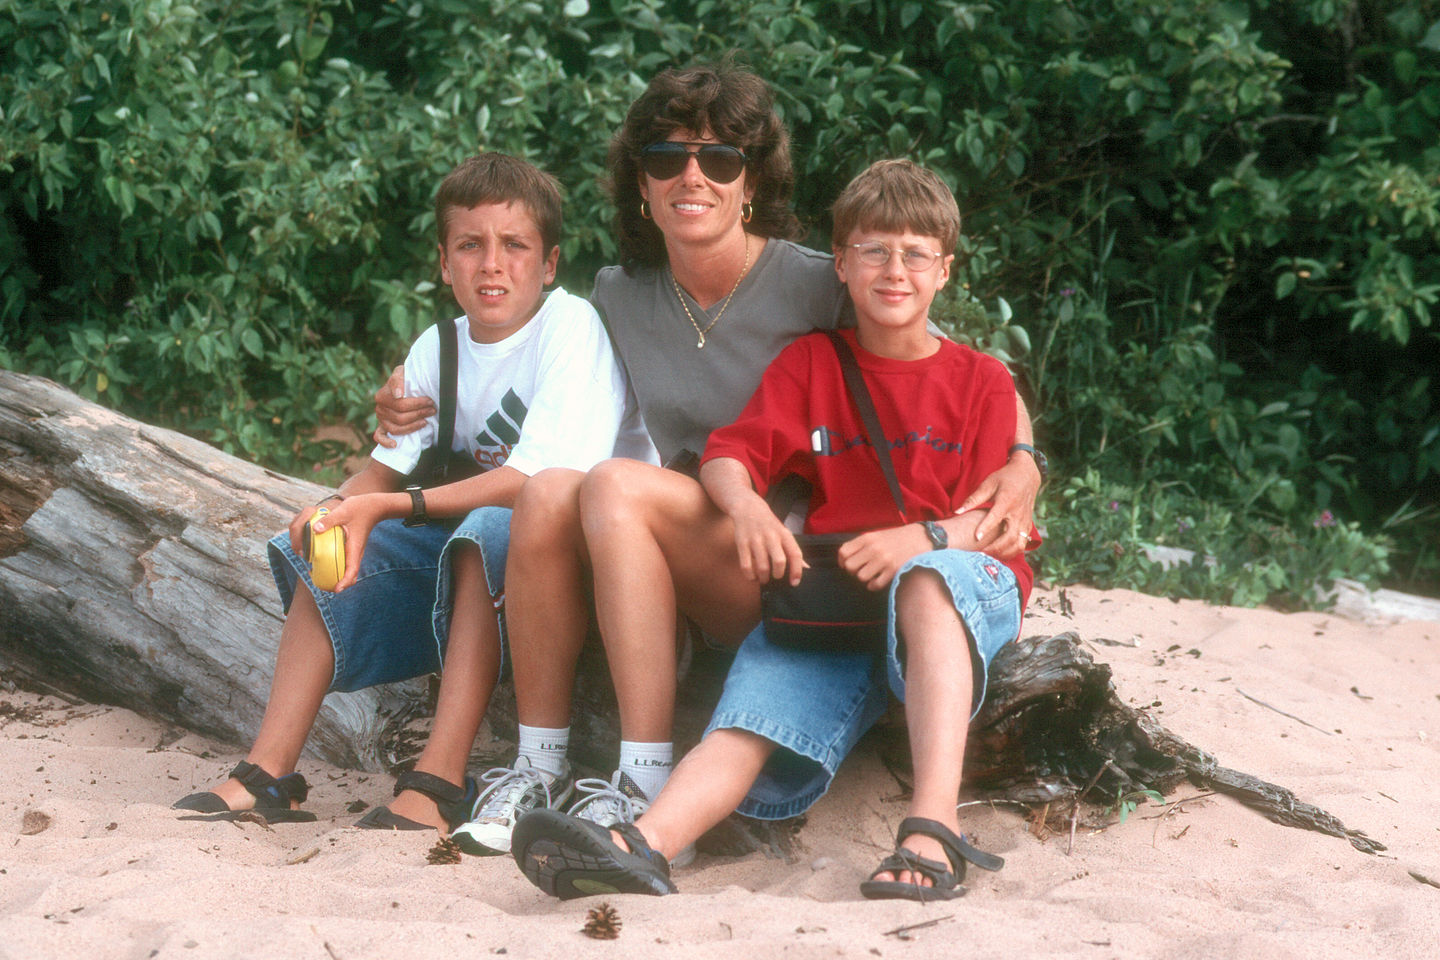 Lolo and the boys at the beach